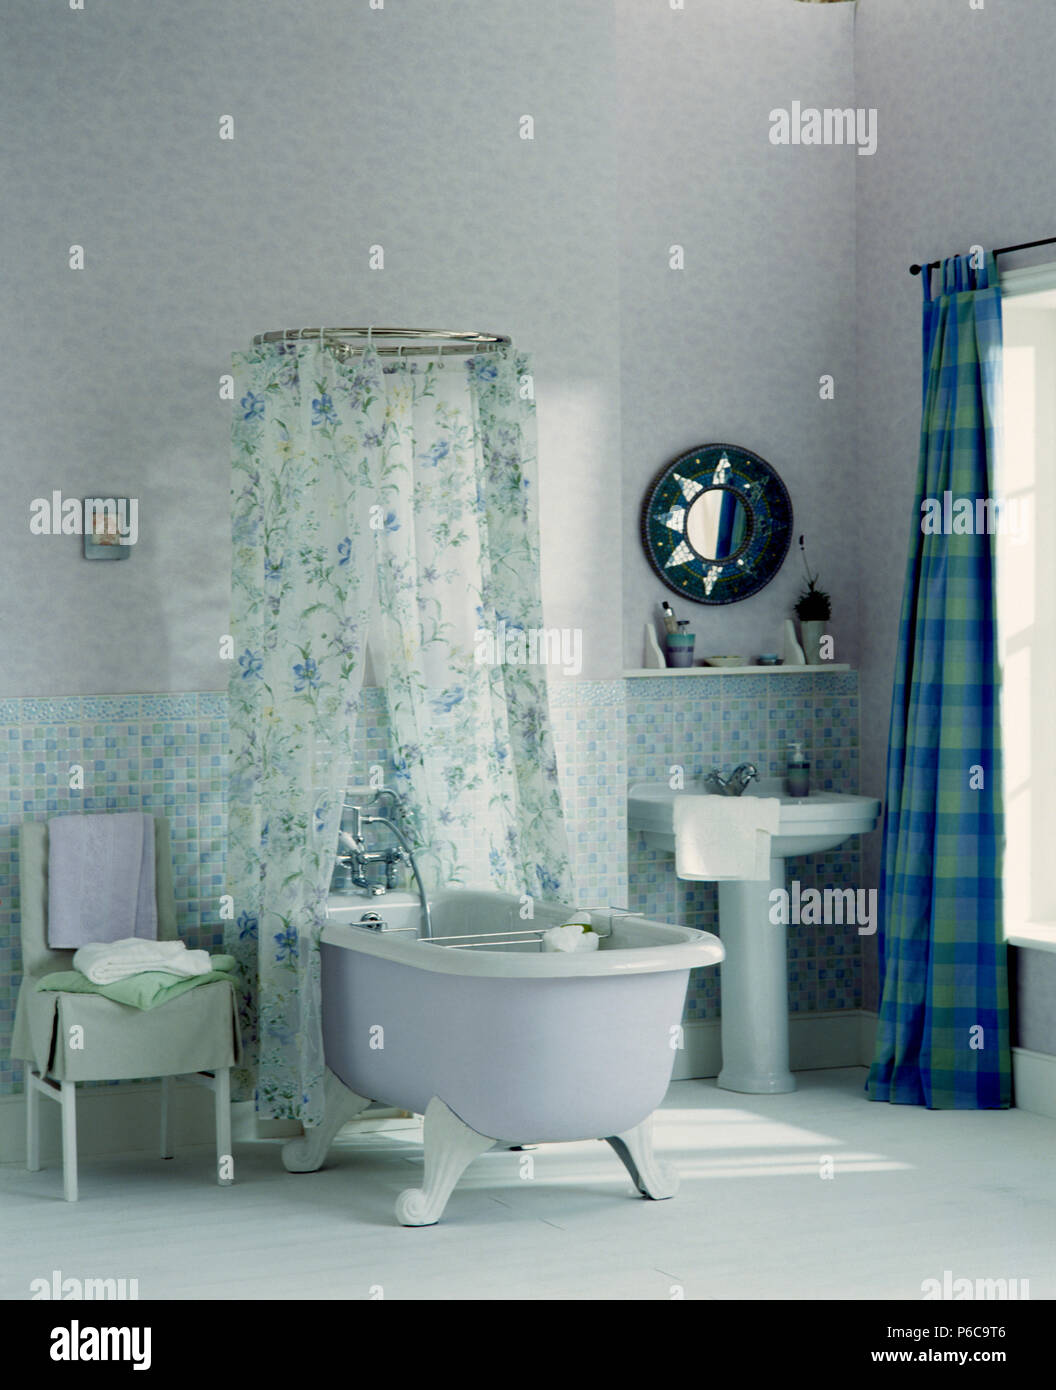 White rolltop bath with floral shower curtain in centre of white ...